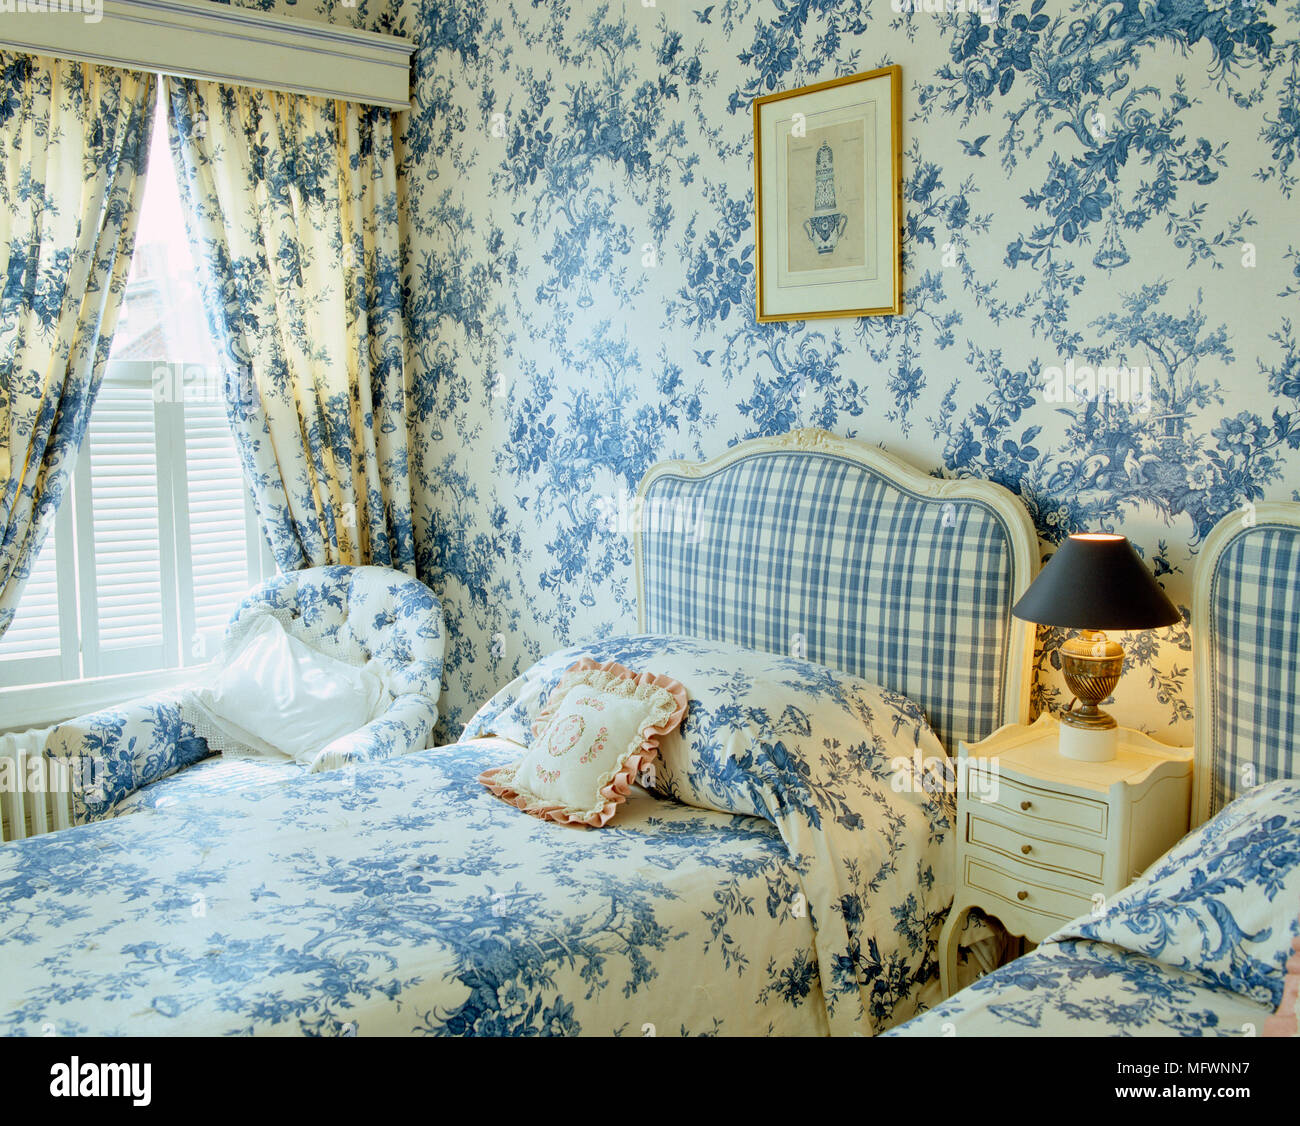 toile de jouy stock photos toile de jouy stock images alamy. Black Bedroom Furniture Sets. Home Design Ideas